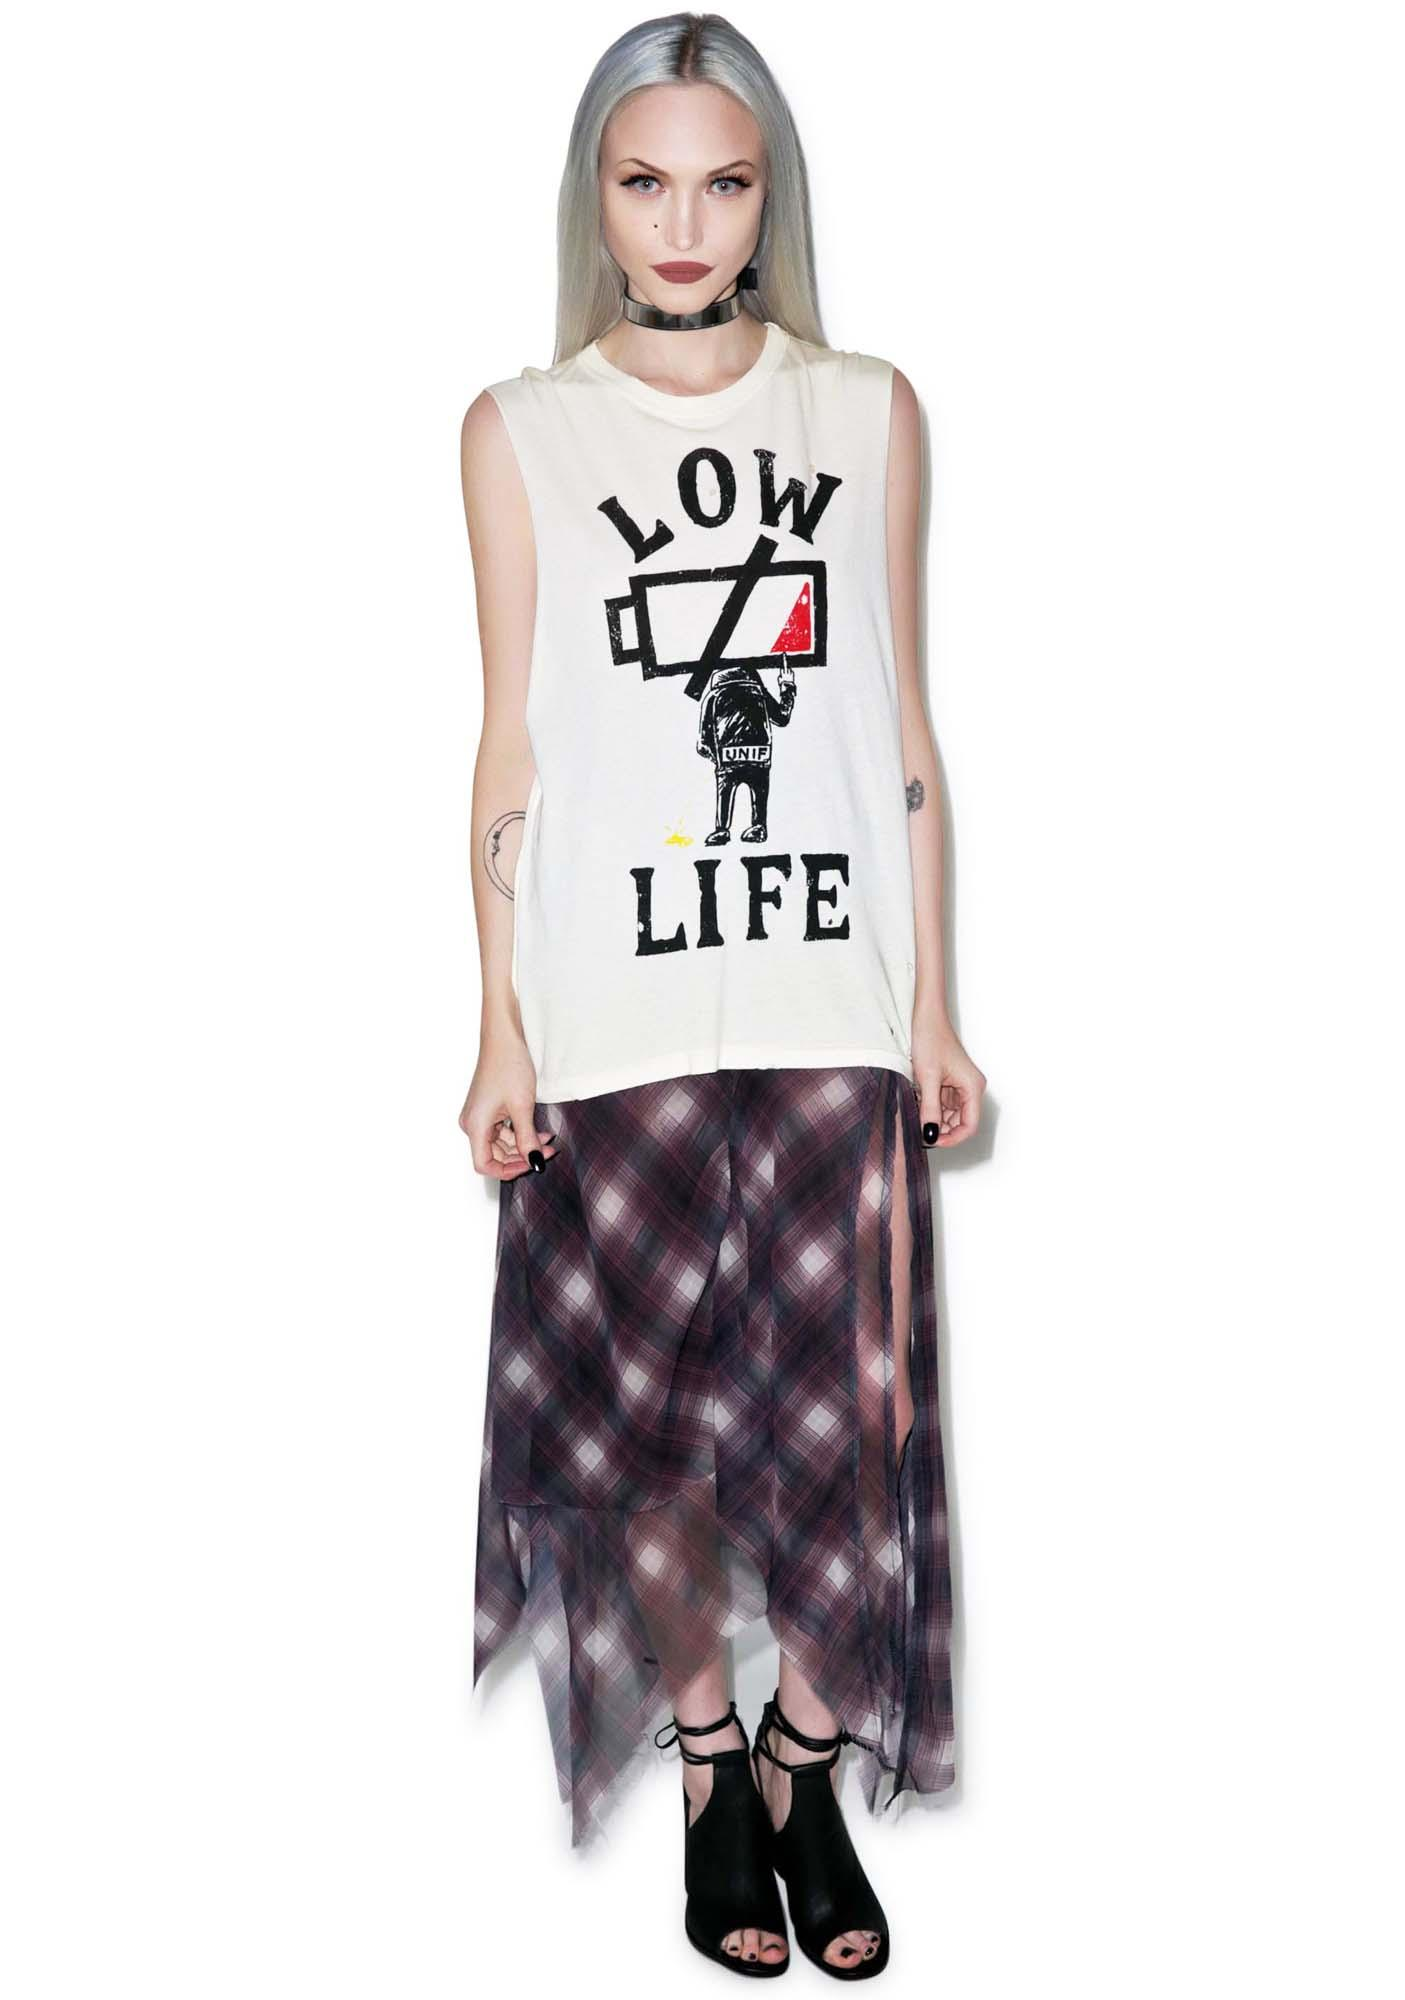 UNIF Low Life Sleeveless Tee